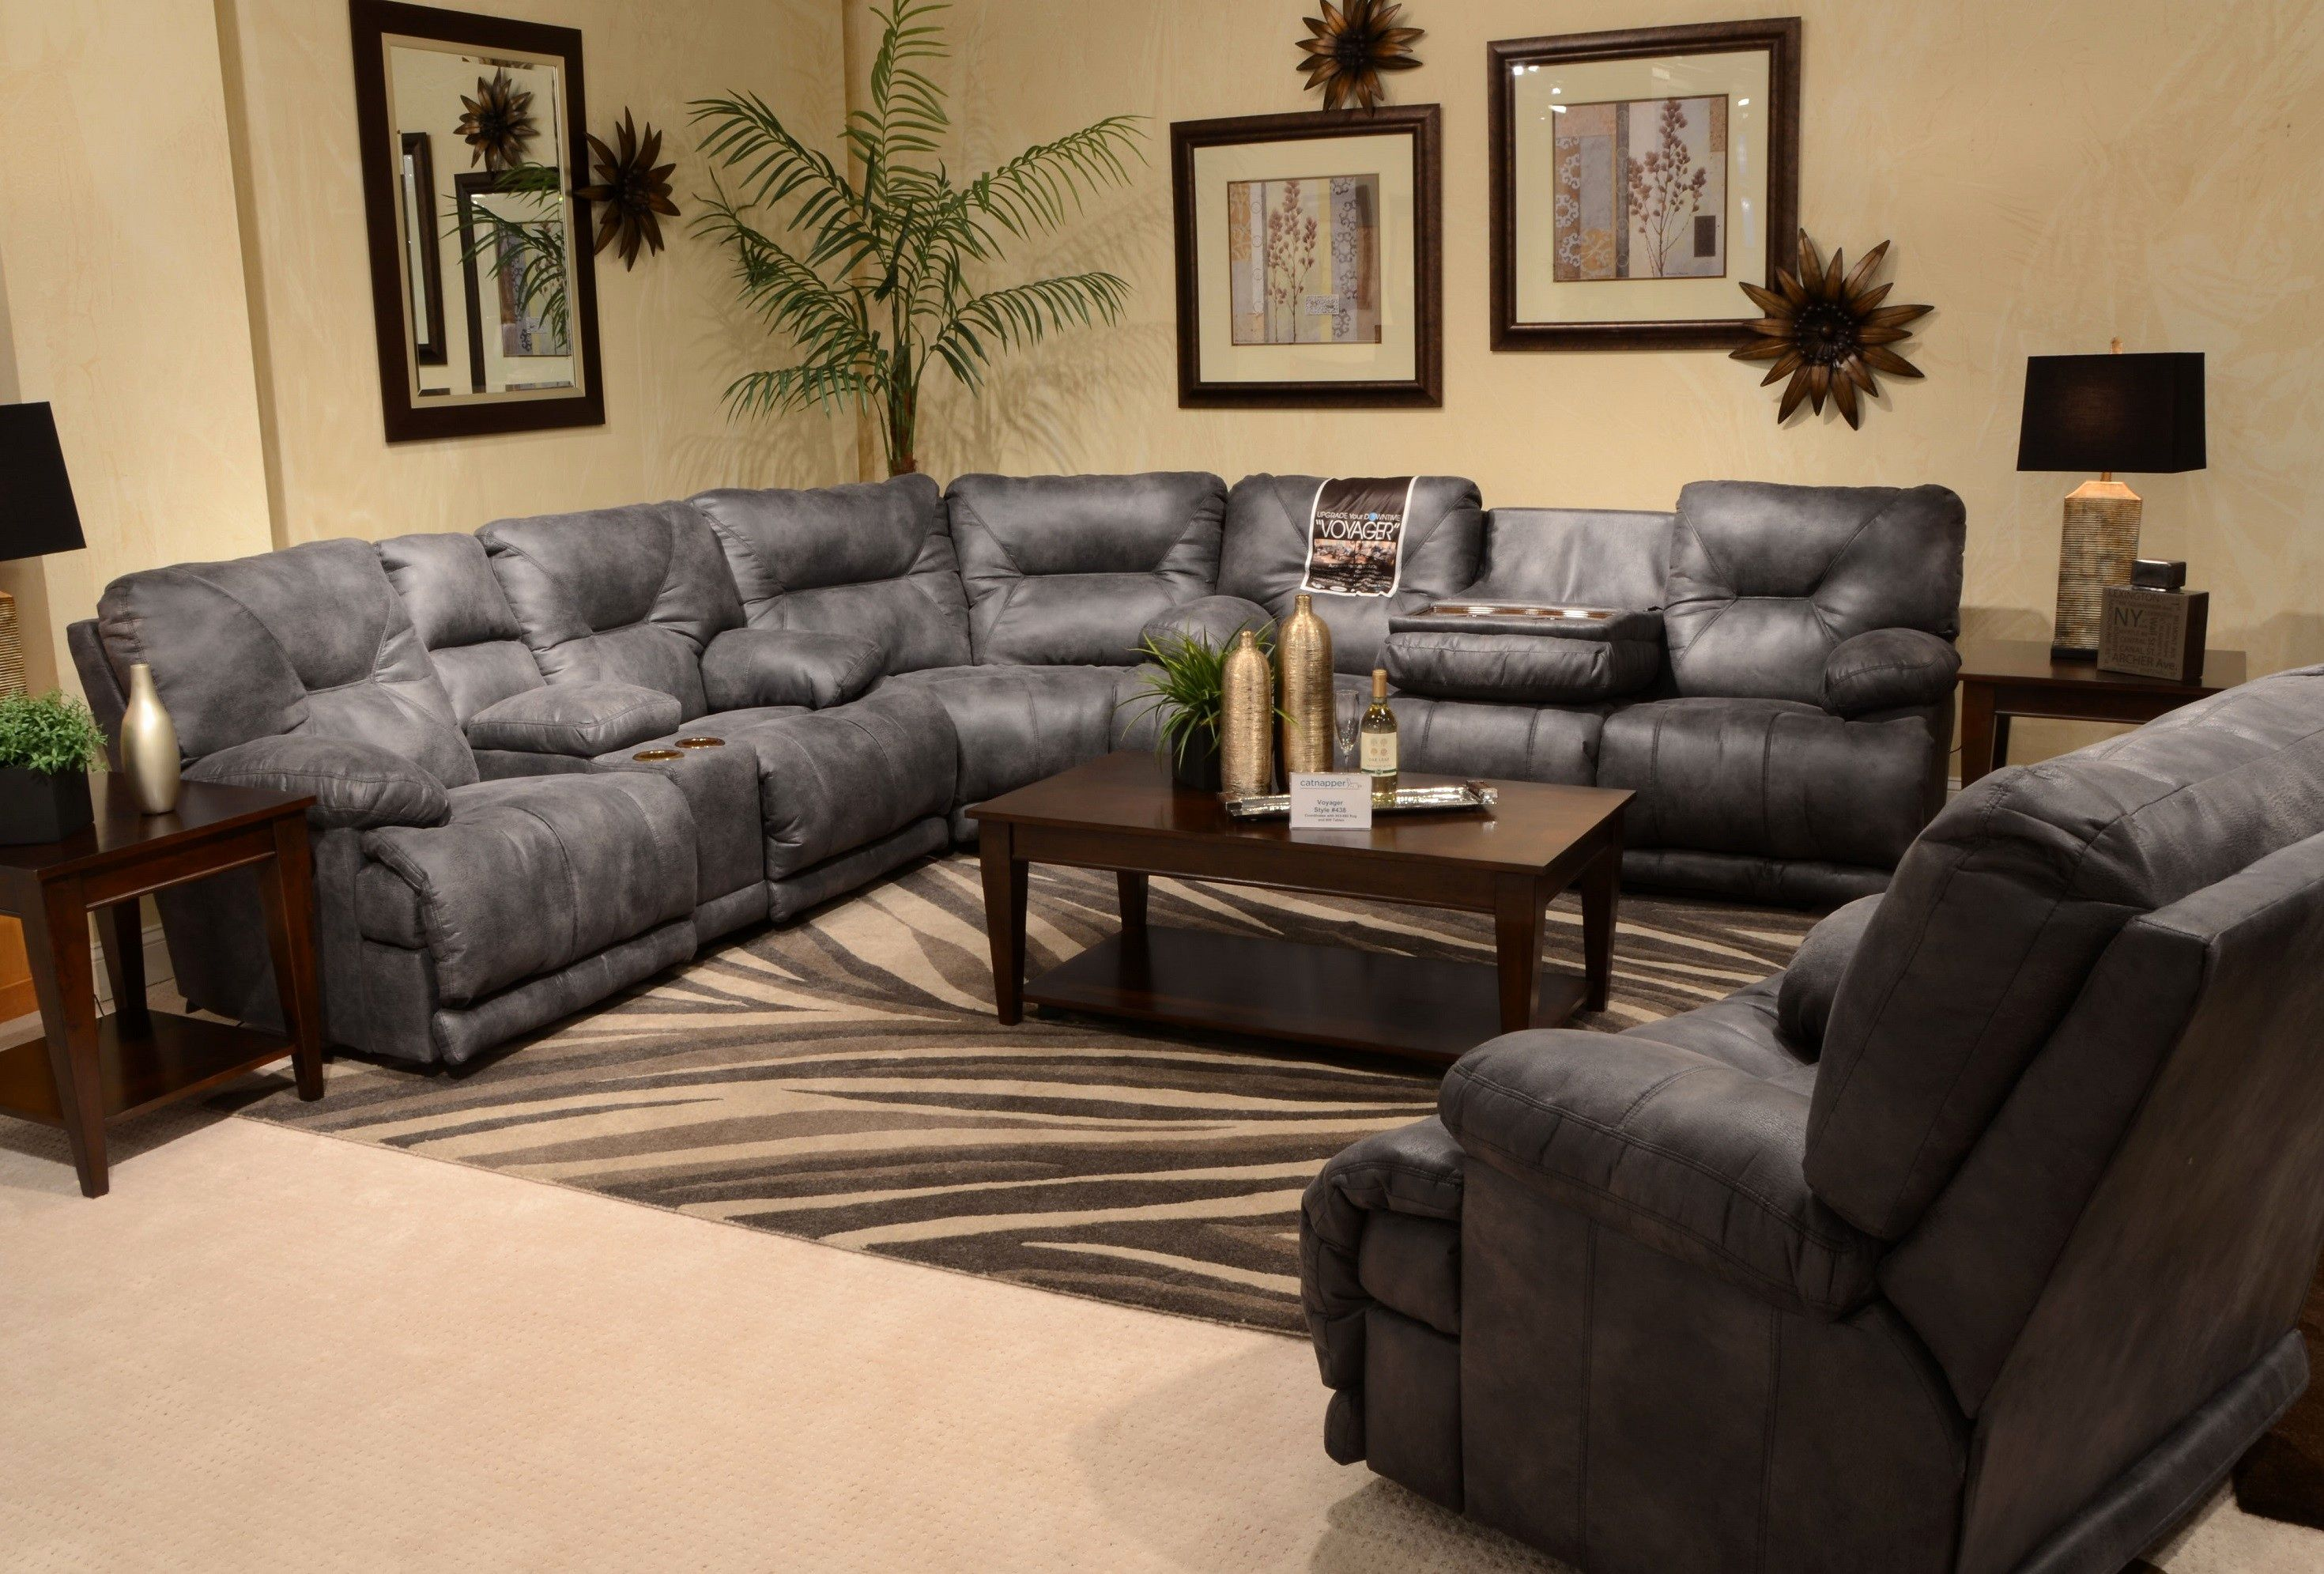 Amazing Small Sectional Sofa With Chaise Lounge Pictures Small Sectional Sofa With Chaise Lou Sectional Sofa With Recliner Reclining Sectional Living Room Sets